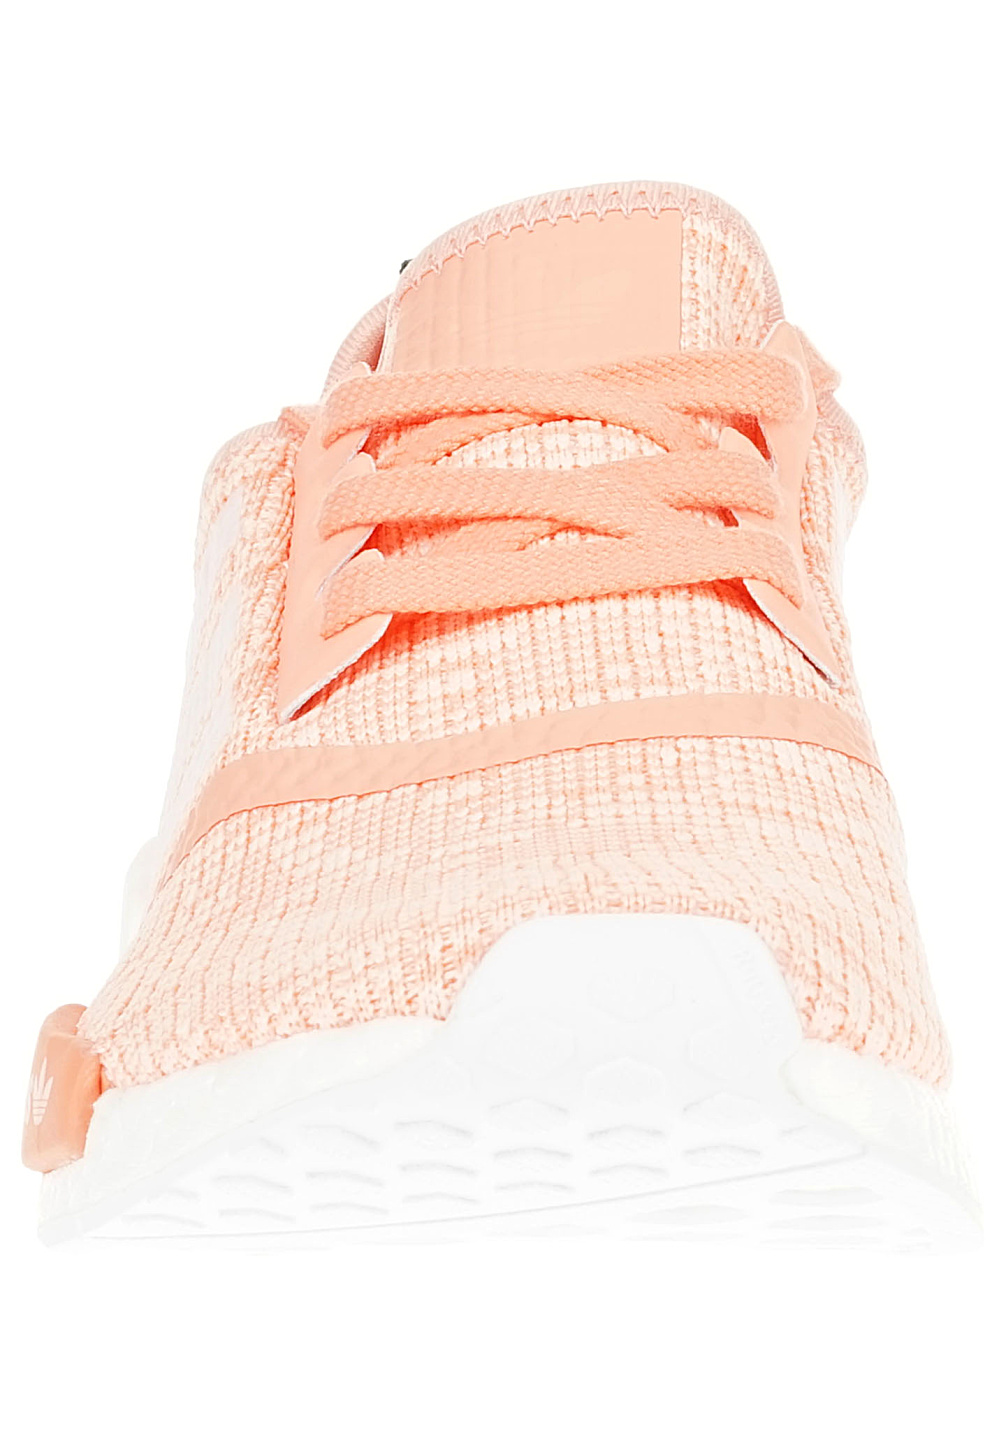 a68e859779289 Next. -30%. This product is currently out of stock. ADIDAS ORIGINALS. NMD R1  - Sneakers for Women